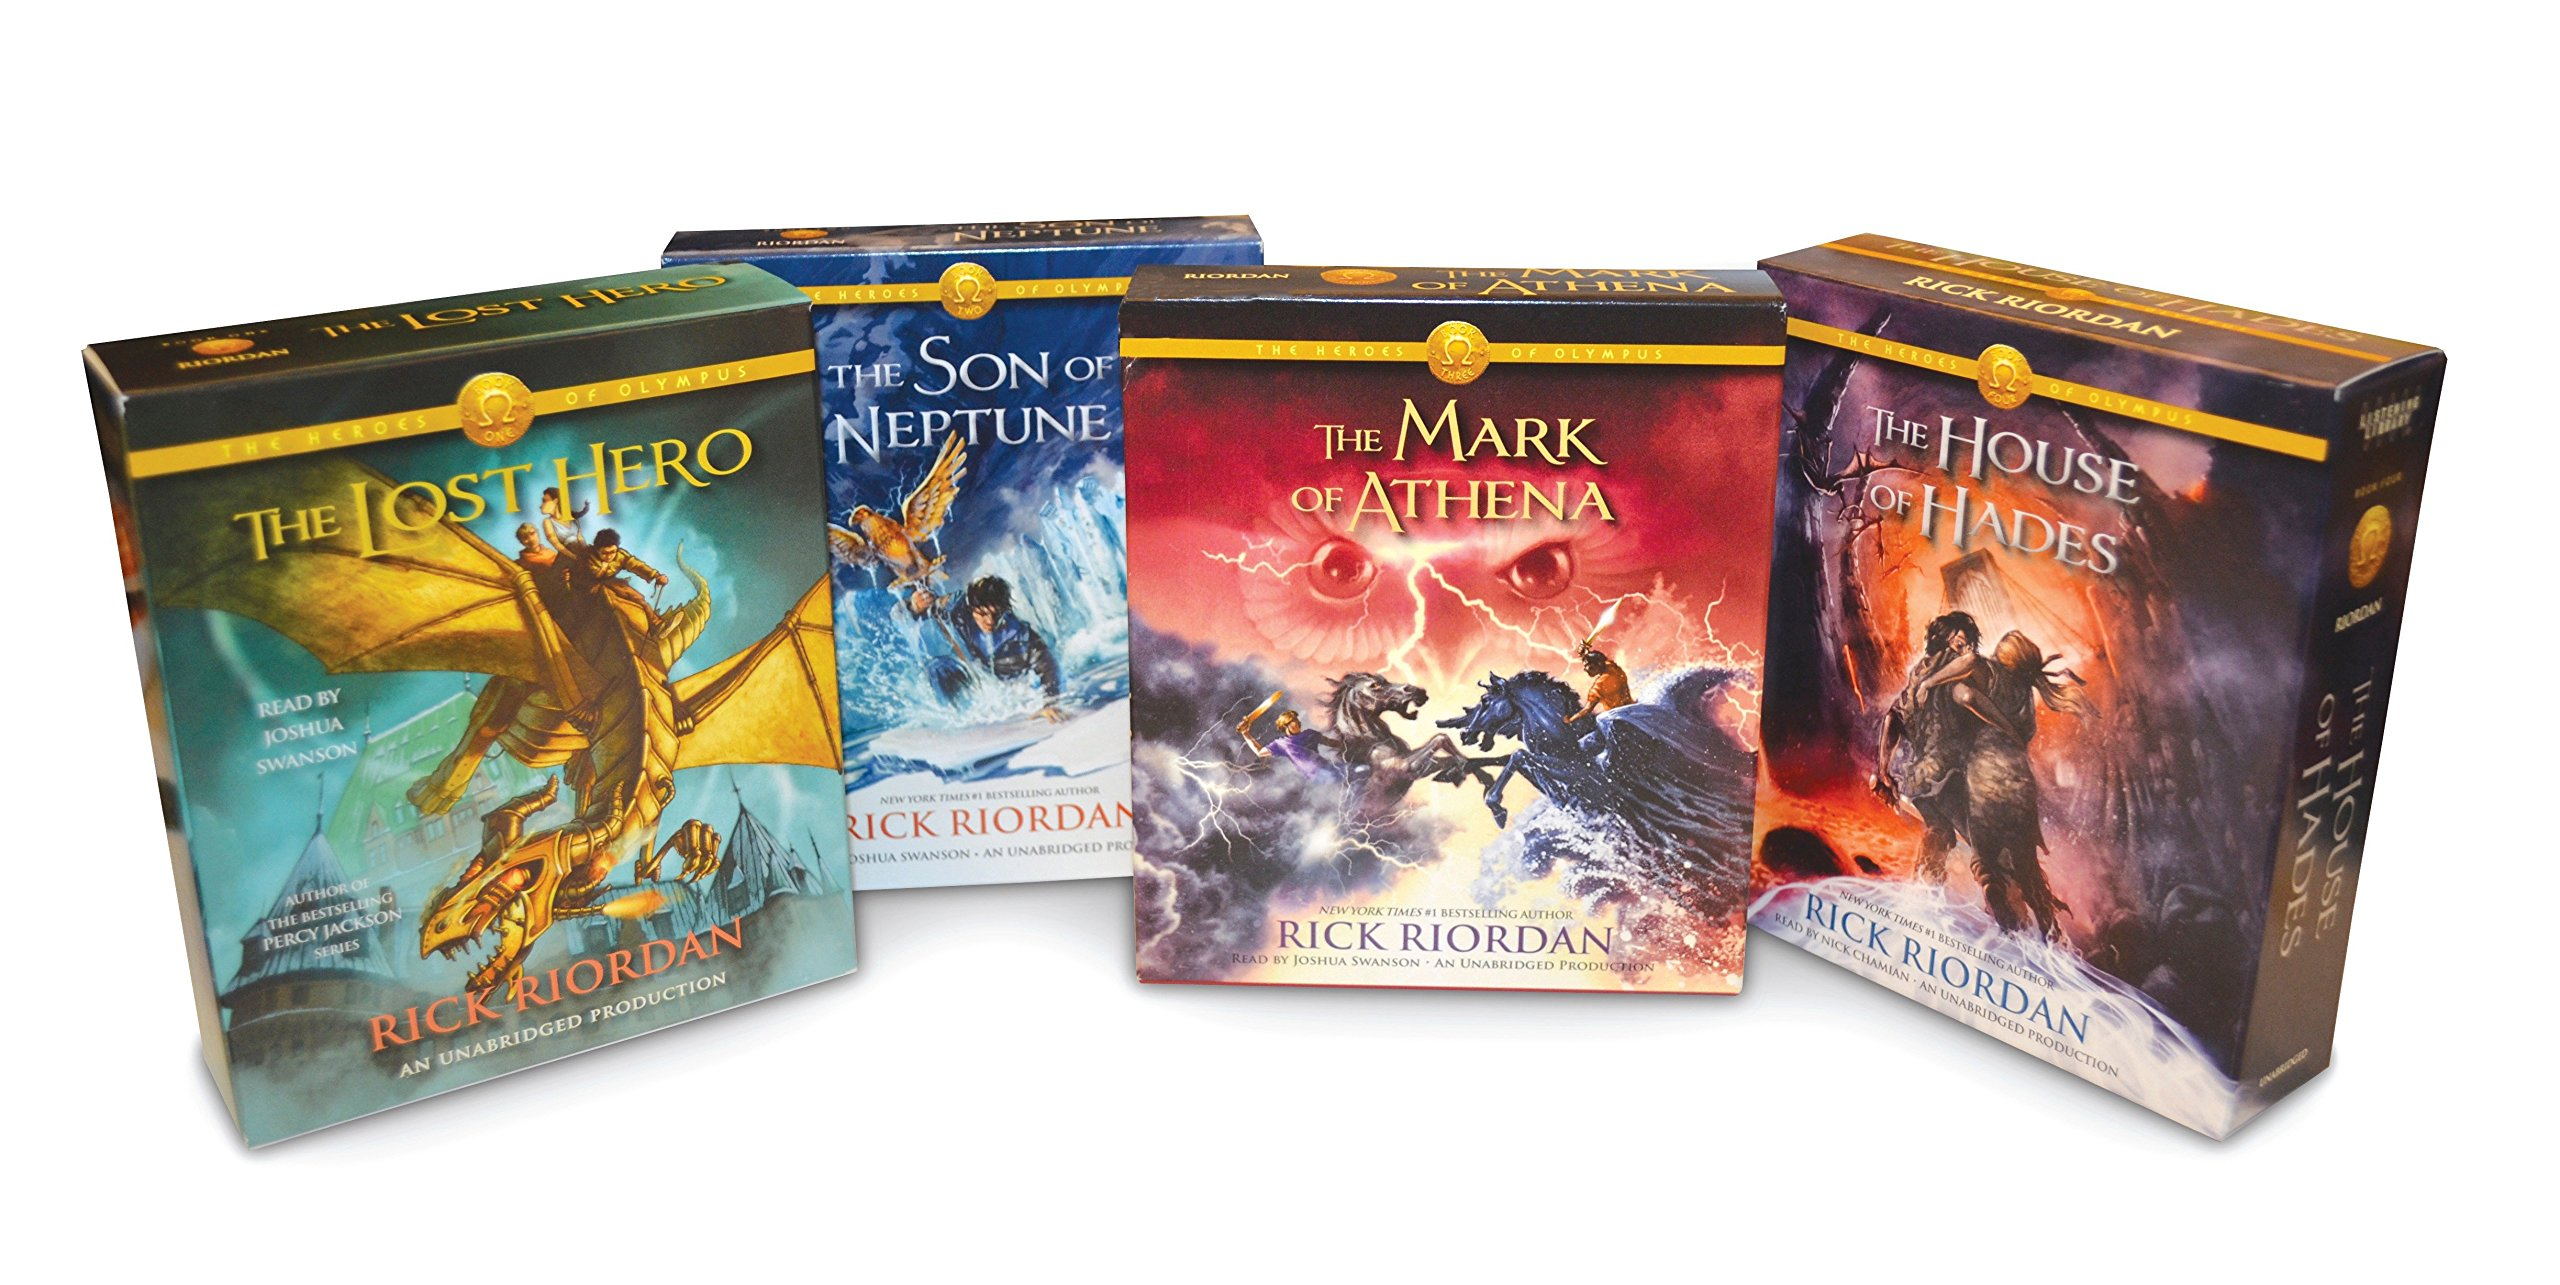 Read Online The Heroes of Olympus Books 1-4 CD Audiobook Bundle: Book One: The Lost Hero; Book Two: The Son of Neptune; Book Three: The Mark of Athena; Book Four: The House of Hades ebook